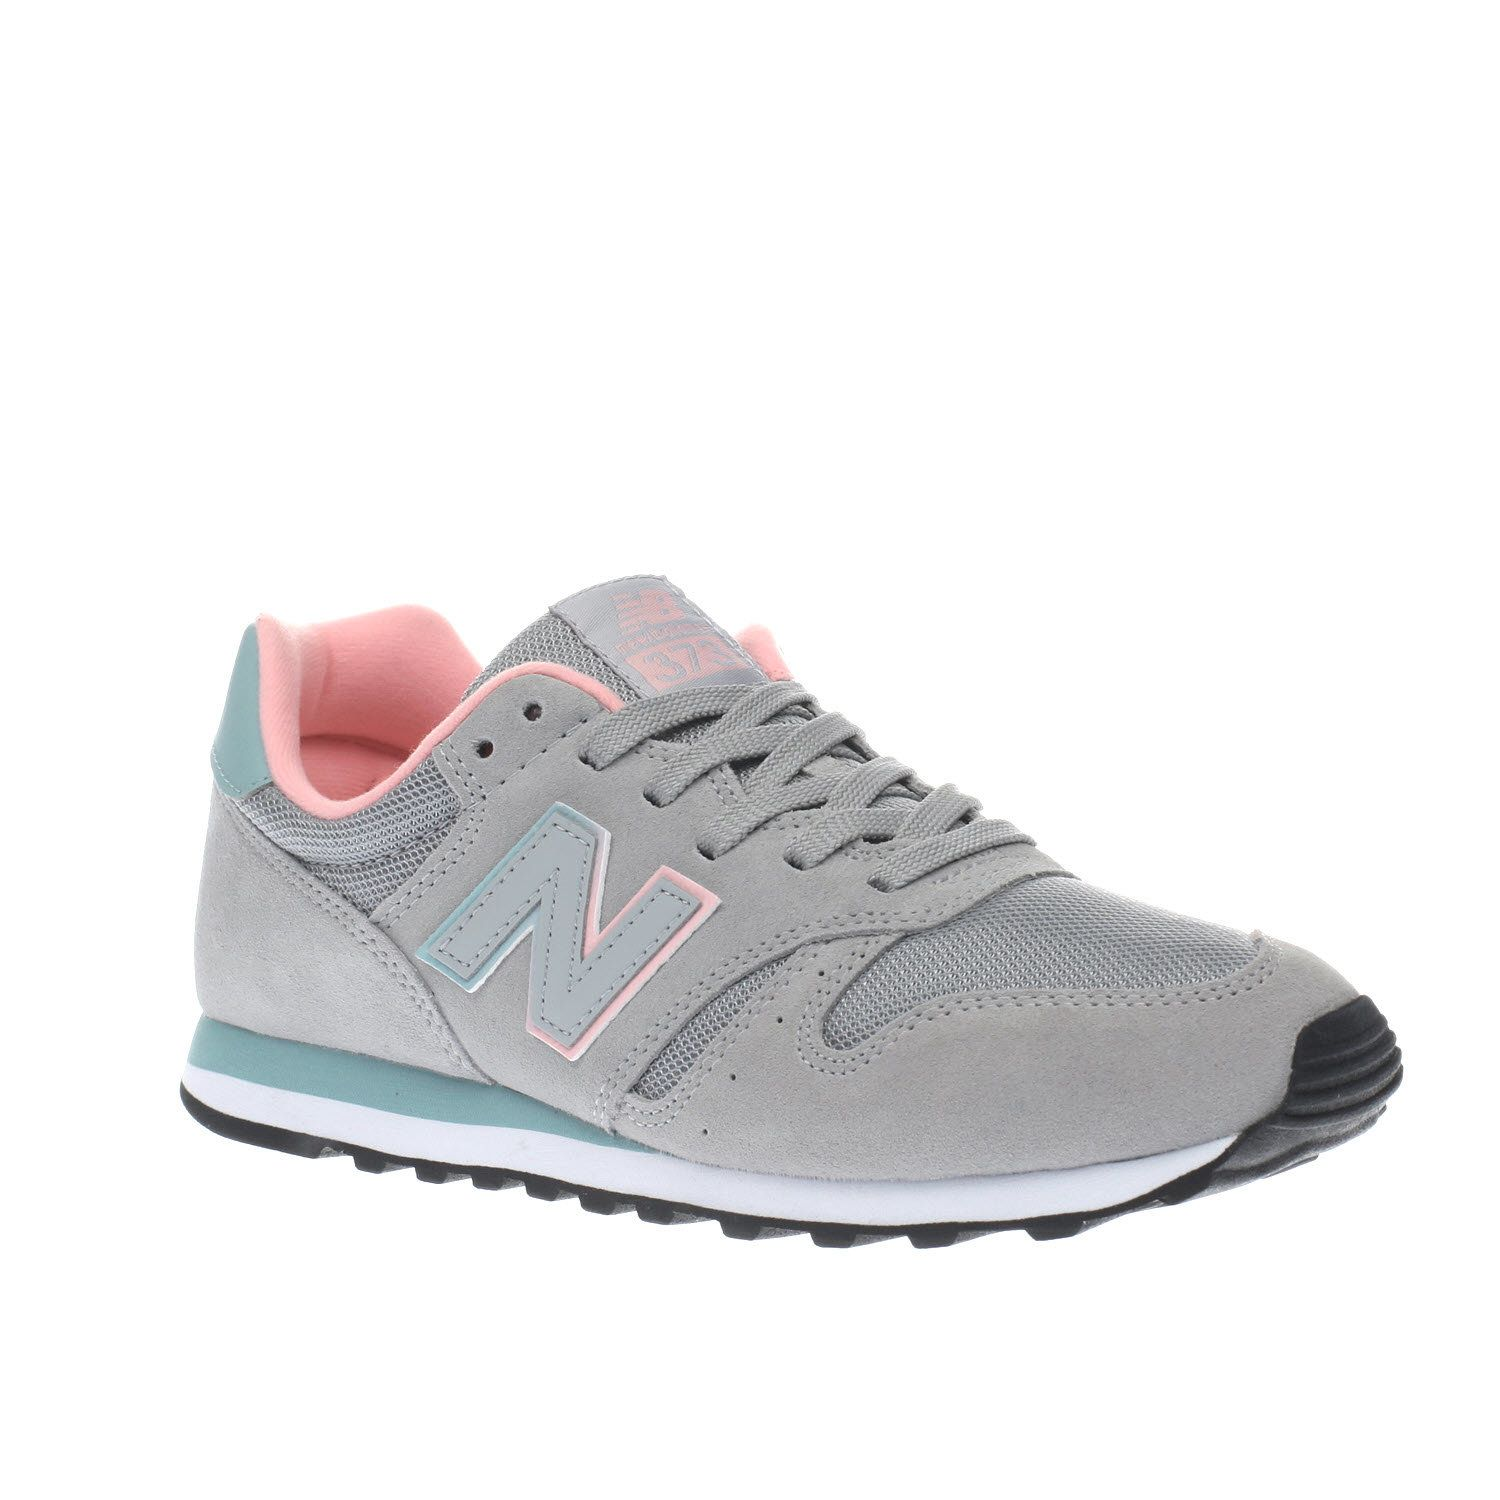 8eabea7eb4 Womens Light Grey New Balance 373 V1 Suede Trainers | schuh | shoes ...